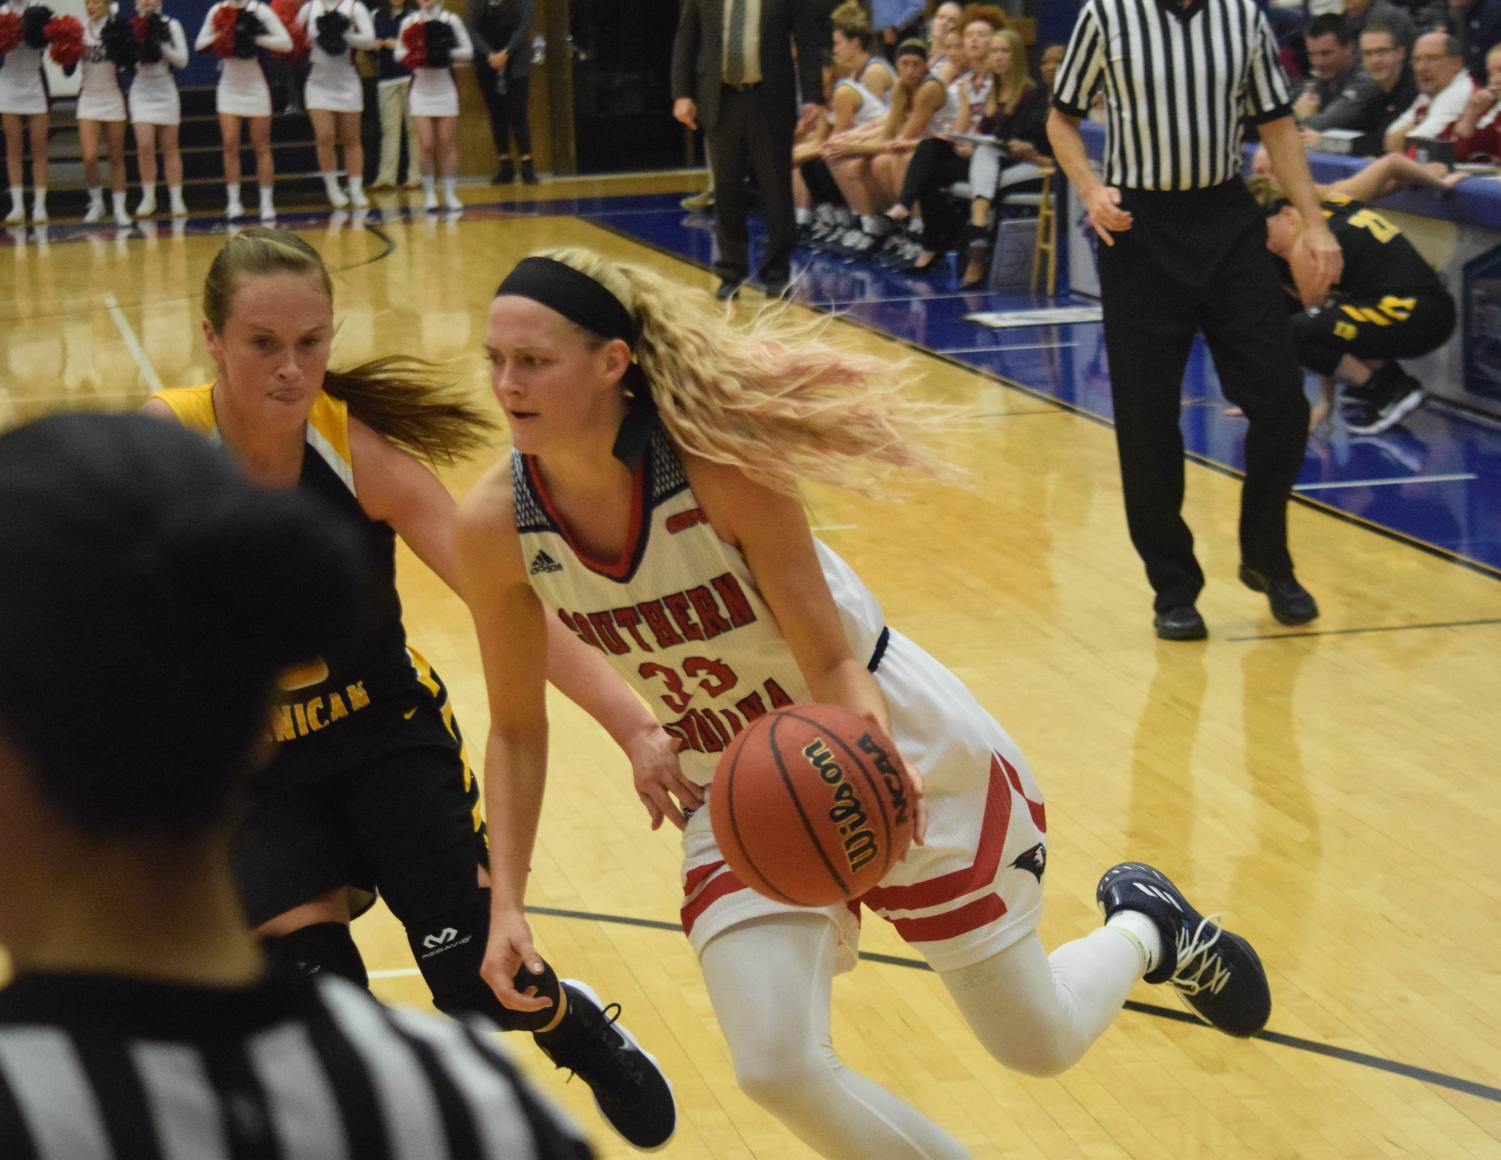 Kaydie+Grooms%2C+senior+forward%2C+drives+the+ball+into+the+defense.